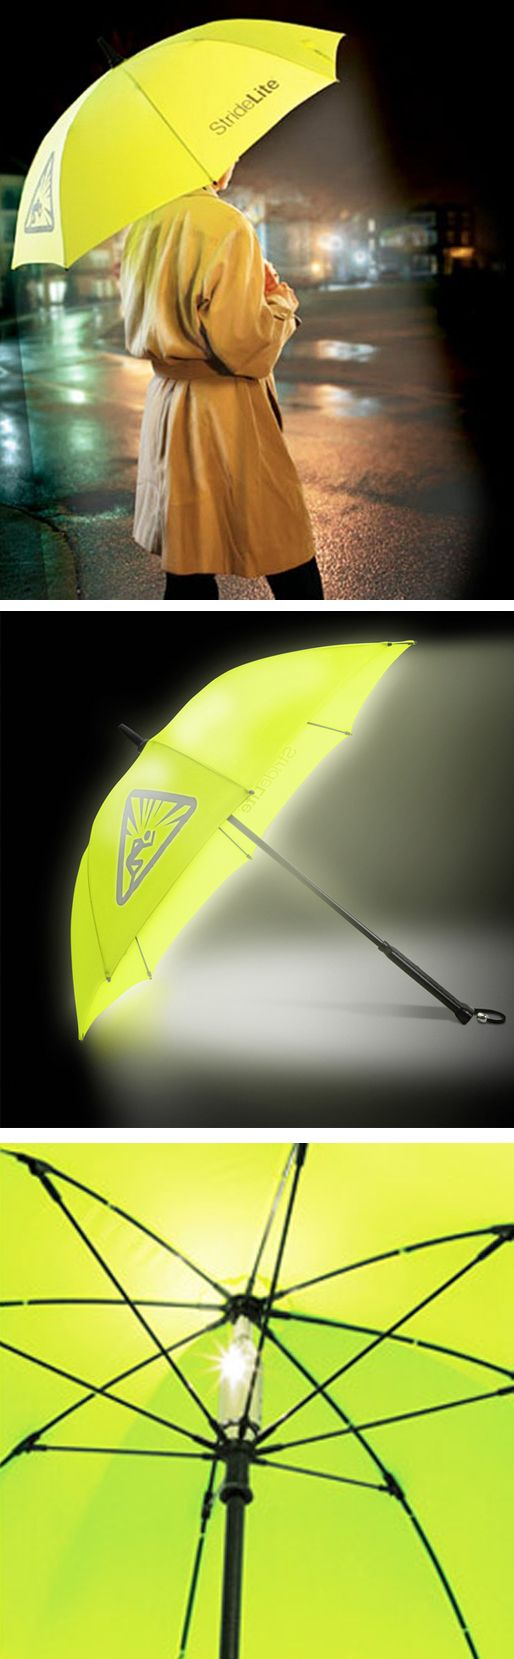 Stridelite Safety Umbrella // an #umbrella with a built-in light! Genius! Great idea... #productdesign